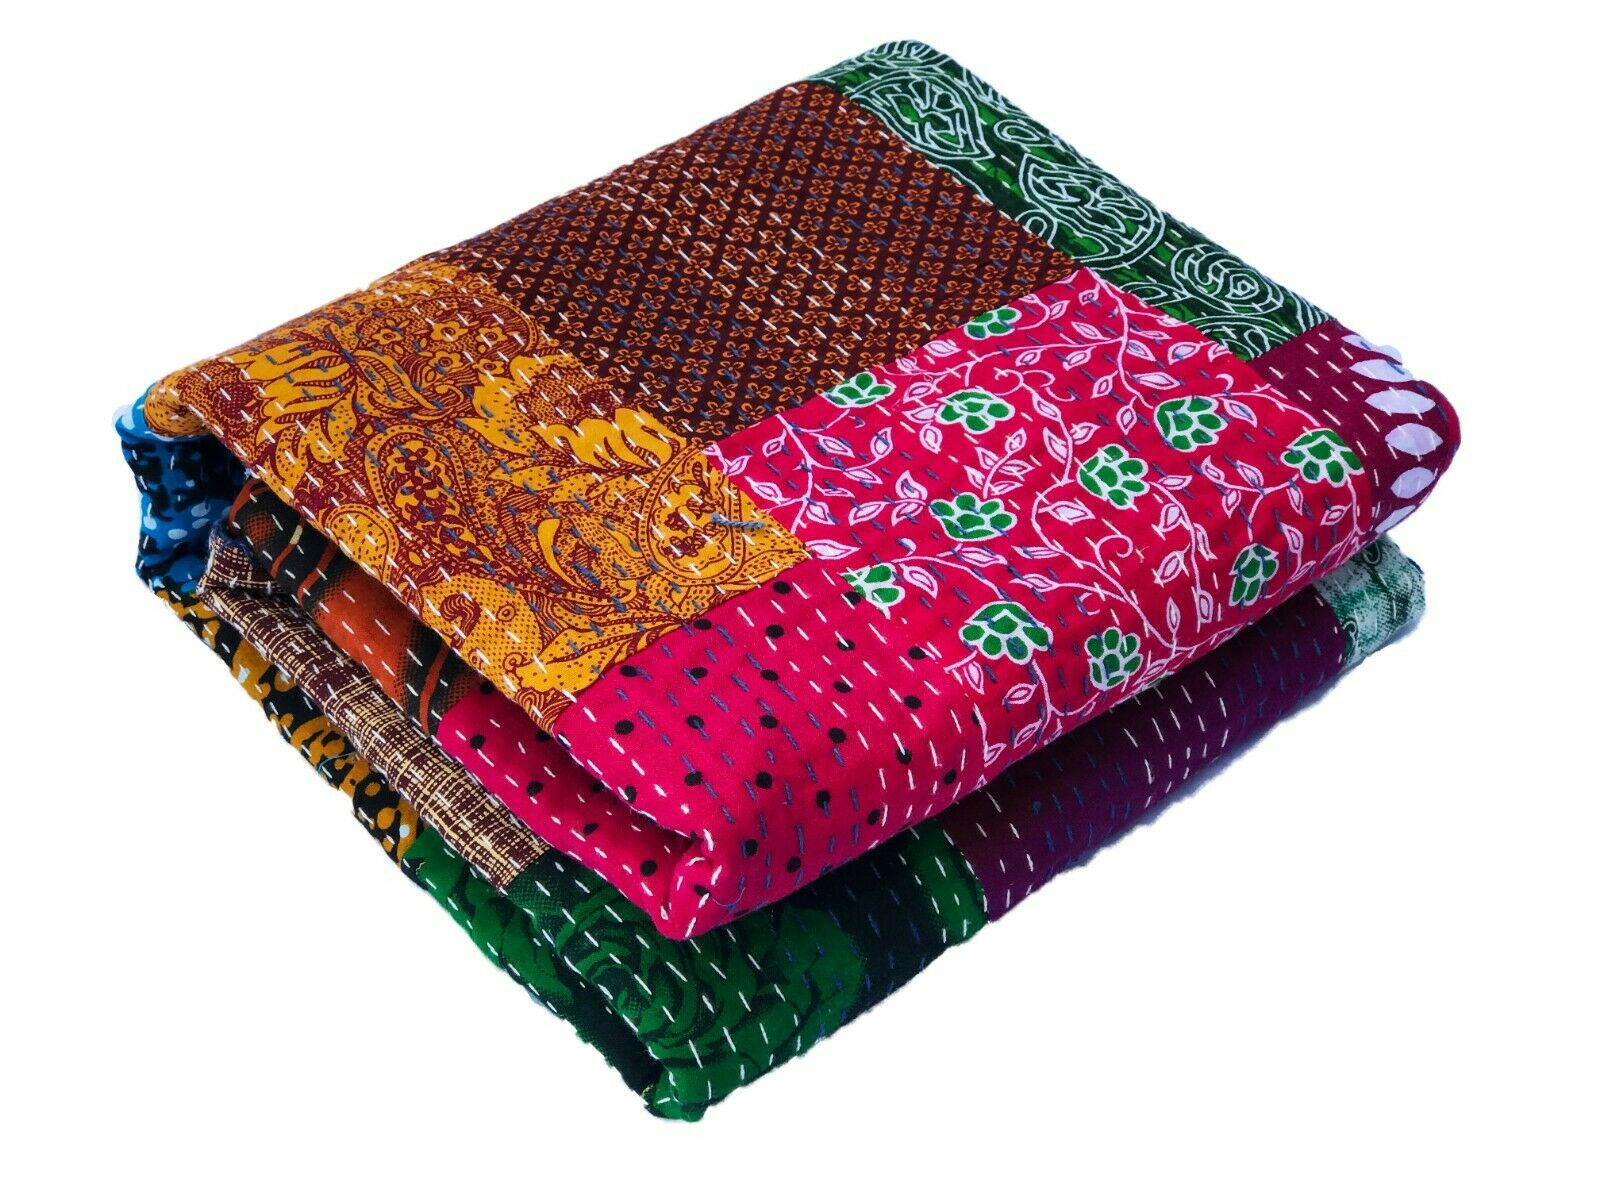 Vintage Indian CottonThrow Kantha Quilt 89  by 63